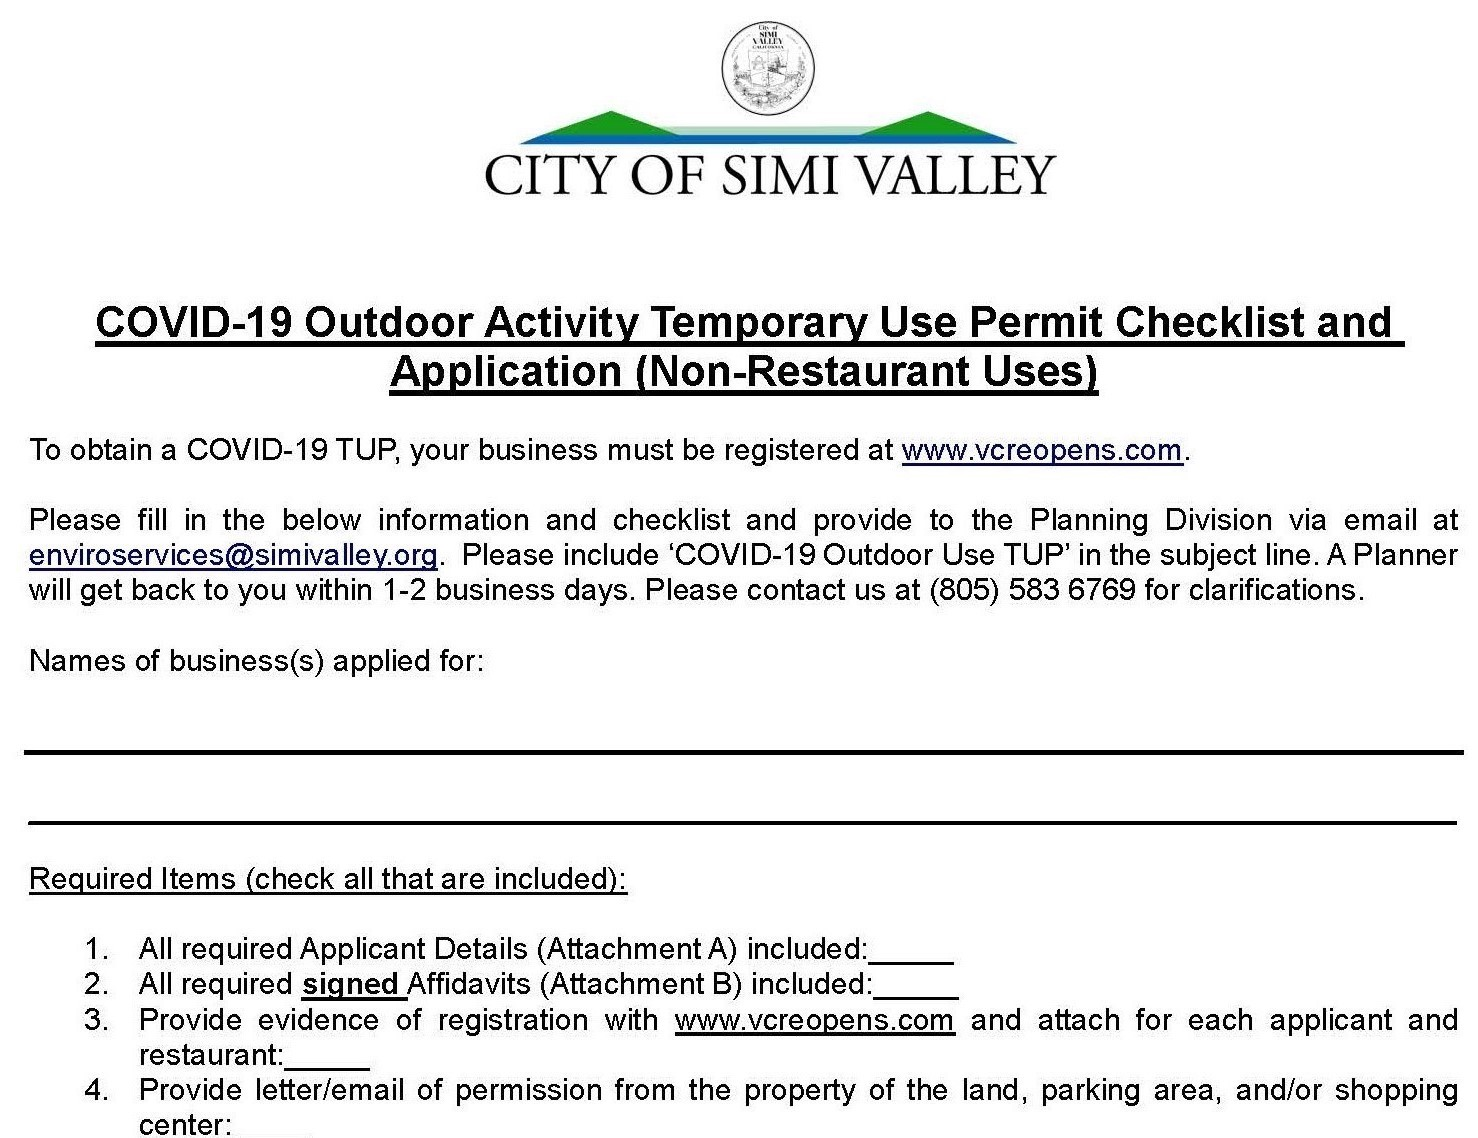 COVID-19 Outdoor Activity Temporary Use Permit Checklist and Application (Non-Restaurant Uses)